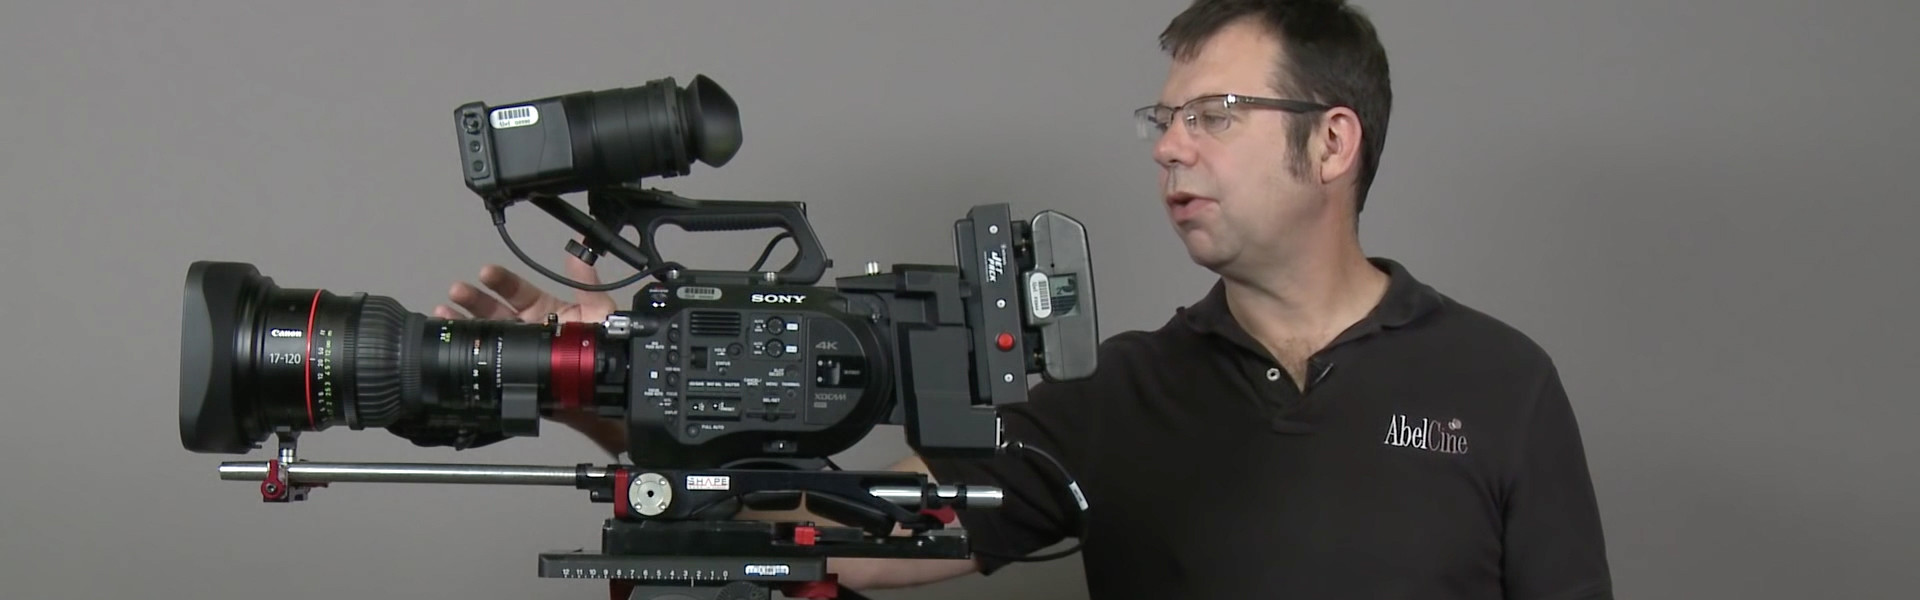 Header image for article At the Bench: Canon Cine-Servo 17-120 Multiple Camera Configurations